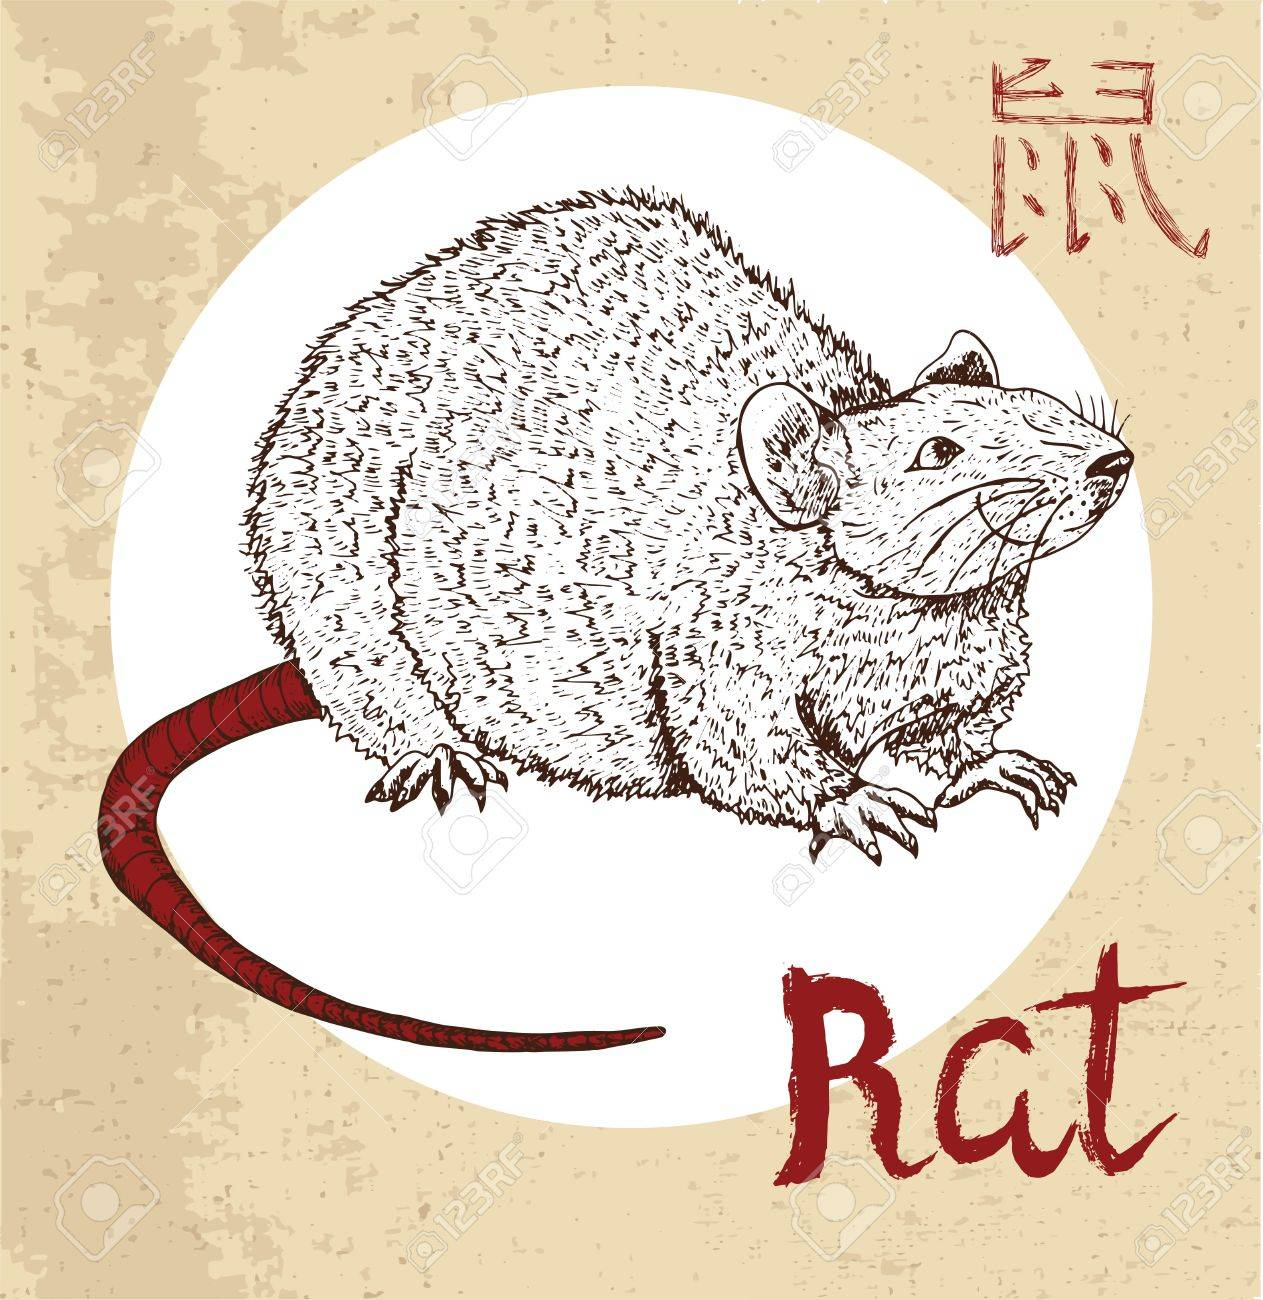 Chinese Zodiac Symbol Of Hand Drawn Rat Or Mouse With Lettering